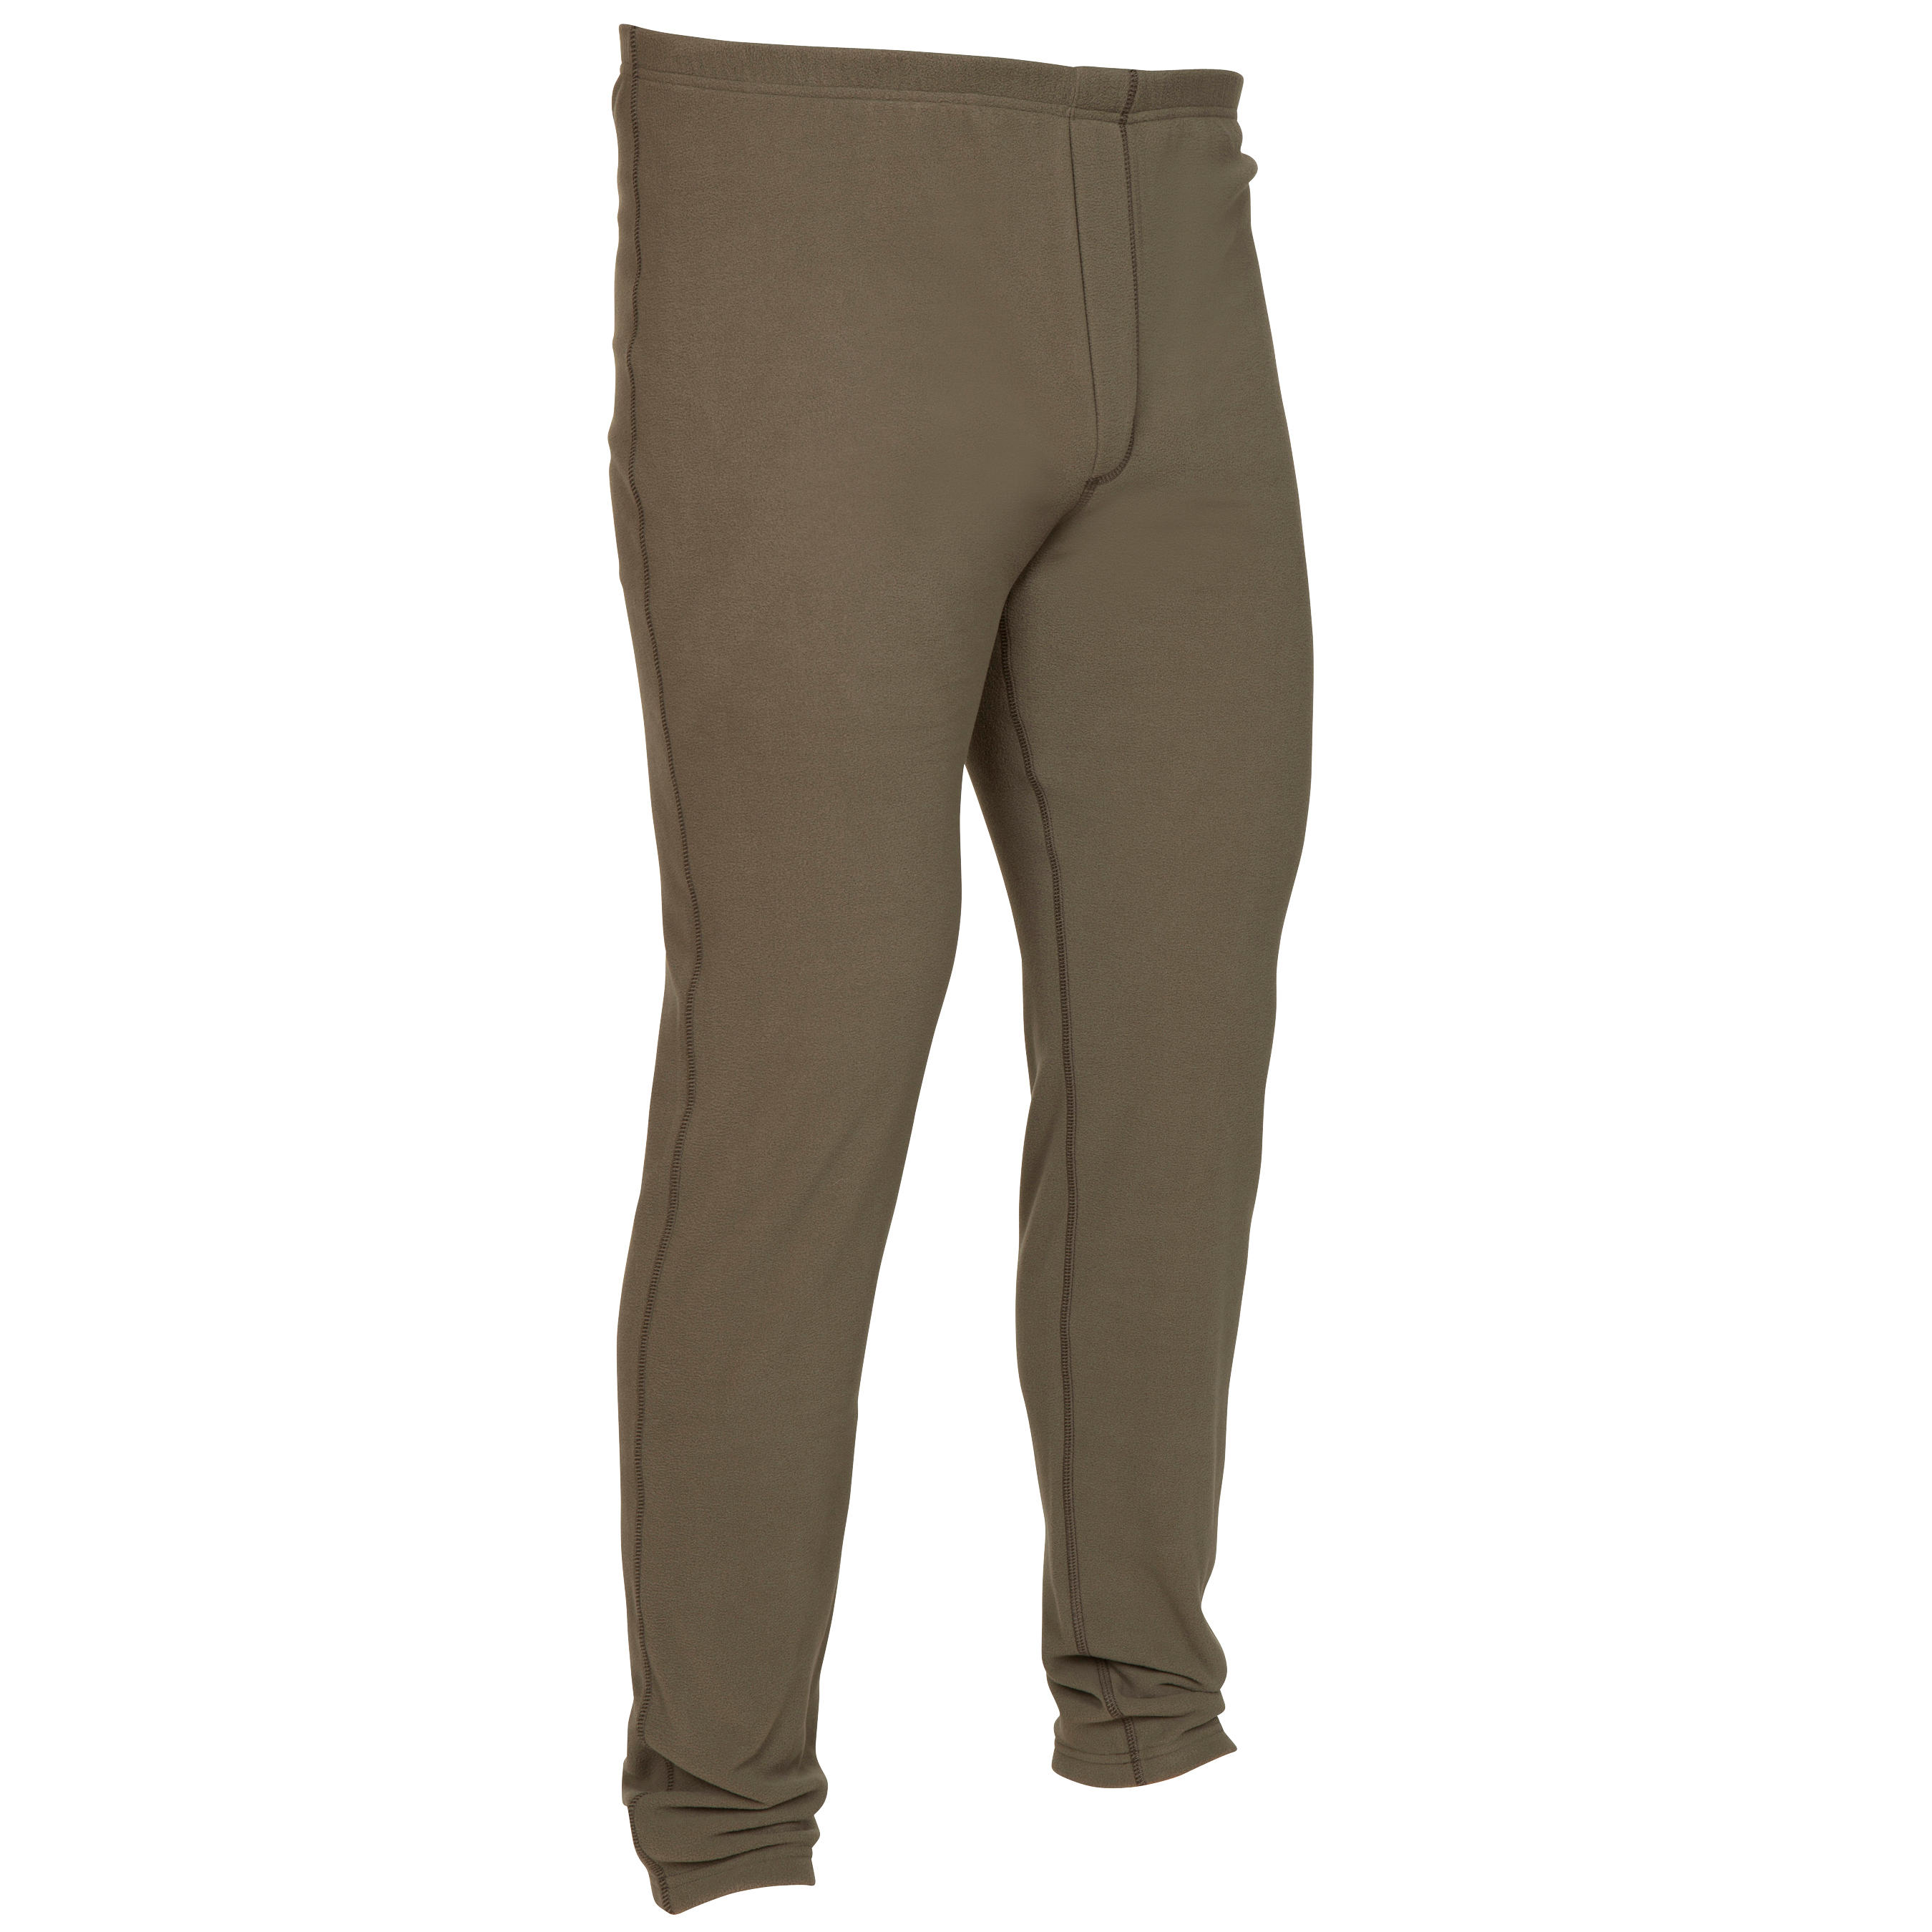 100 base layer long johns - green